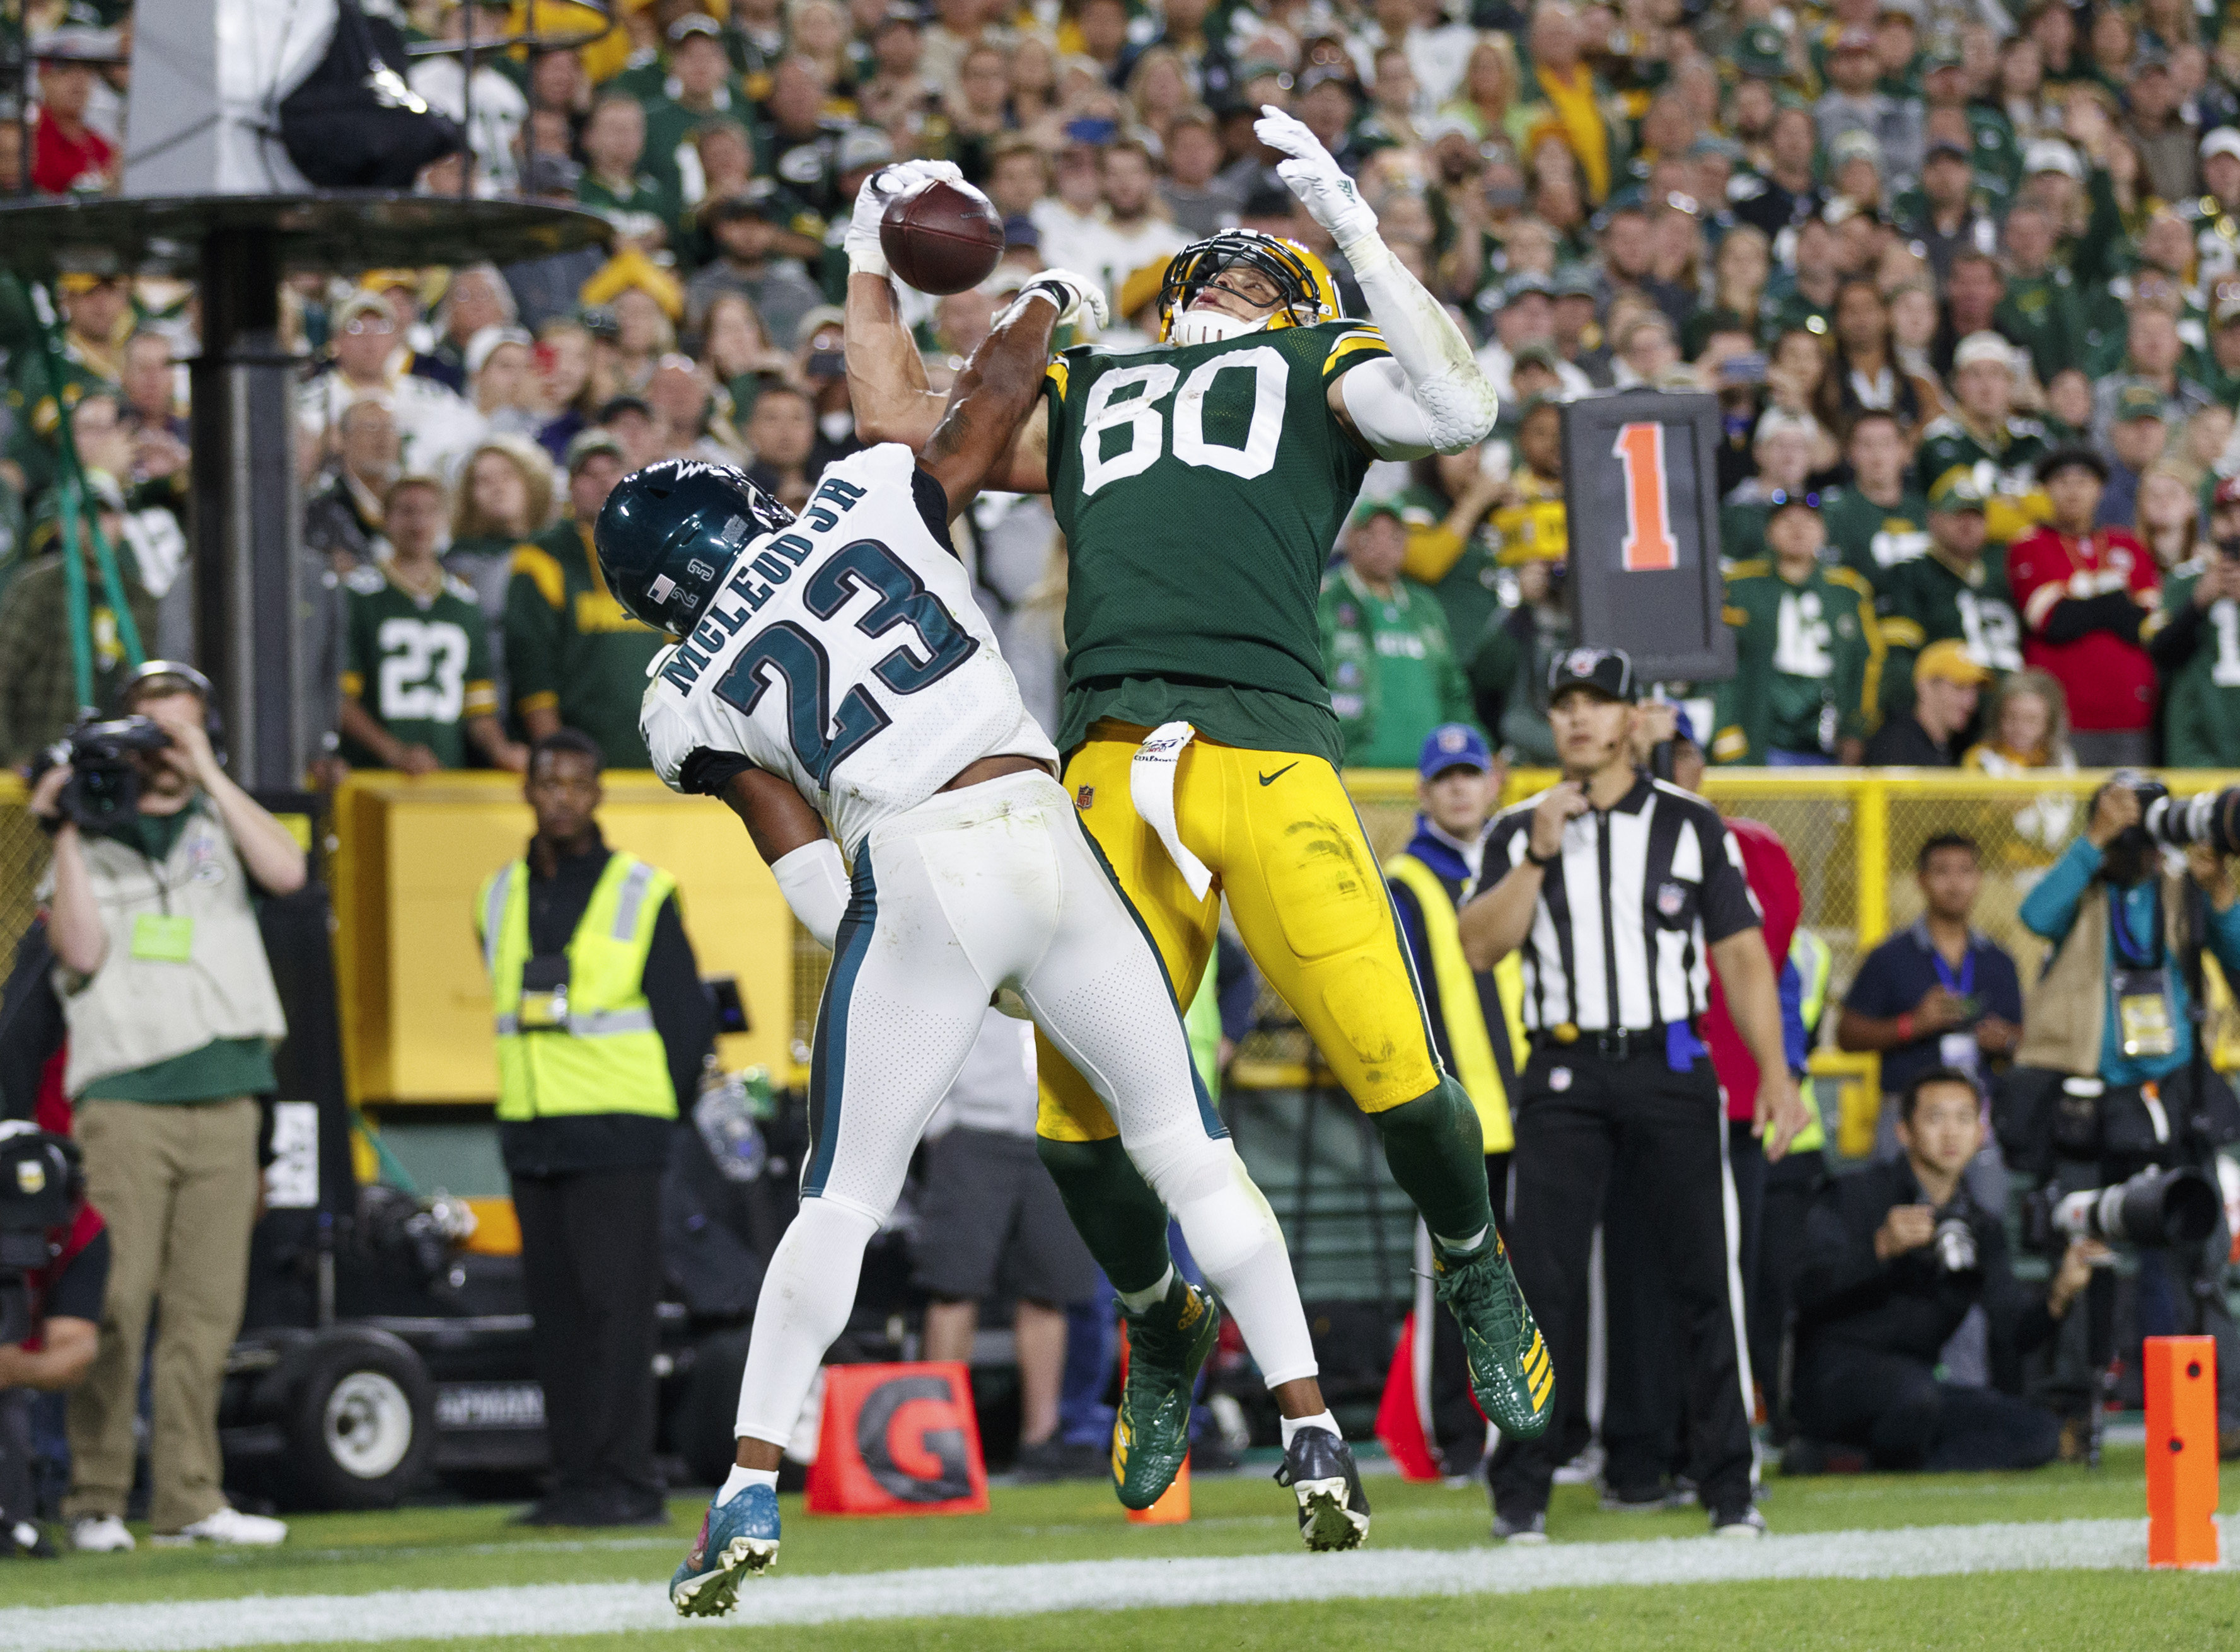 Jimmy Graham, the Lost Cause